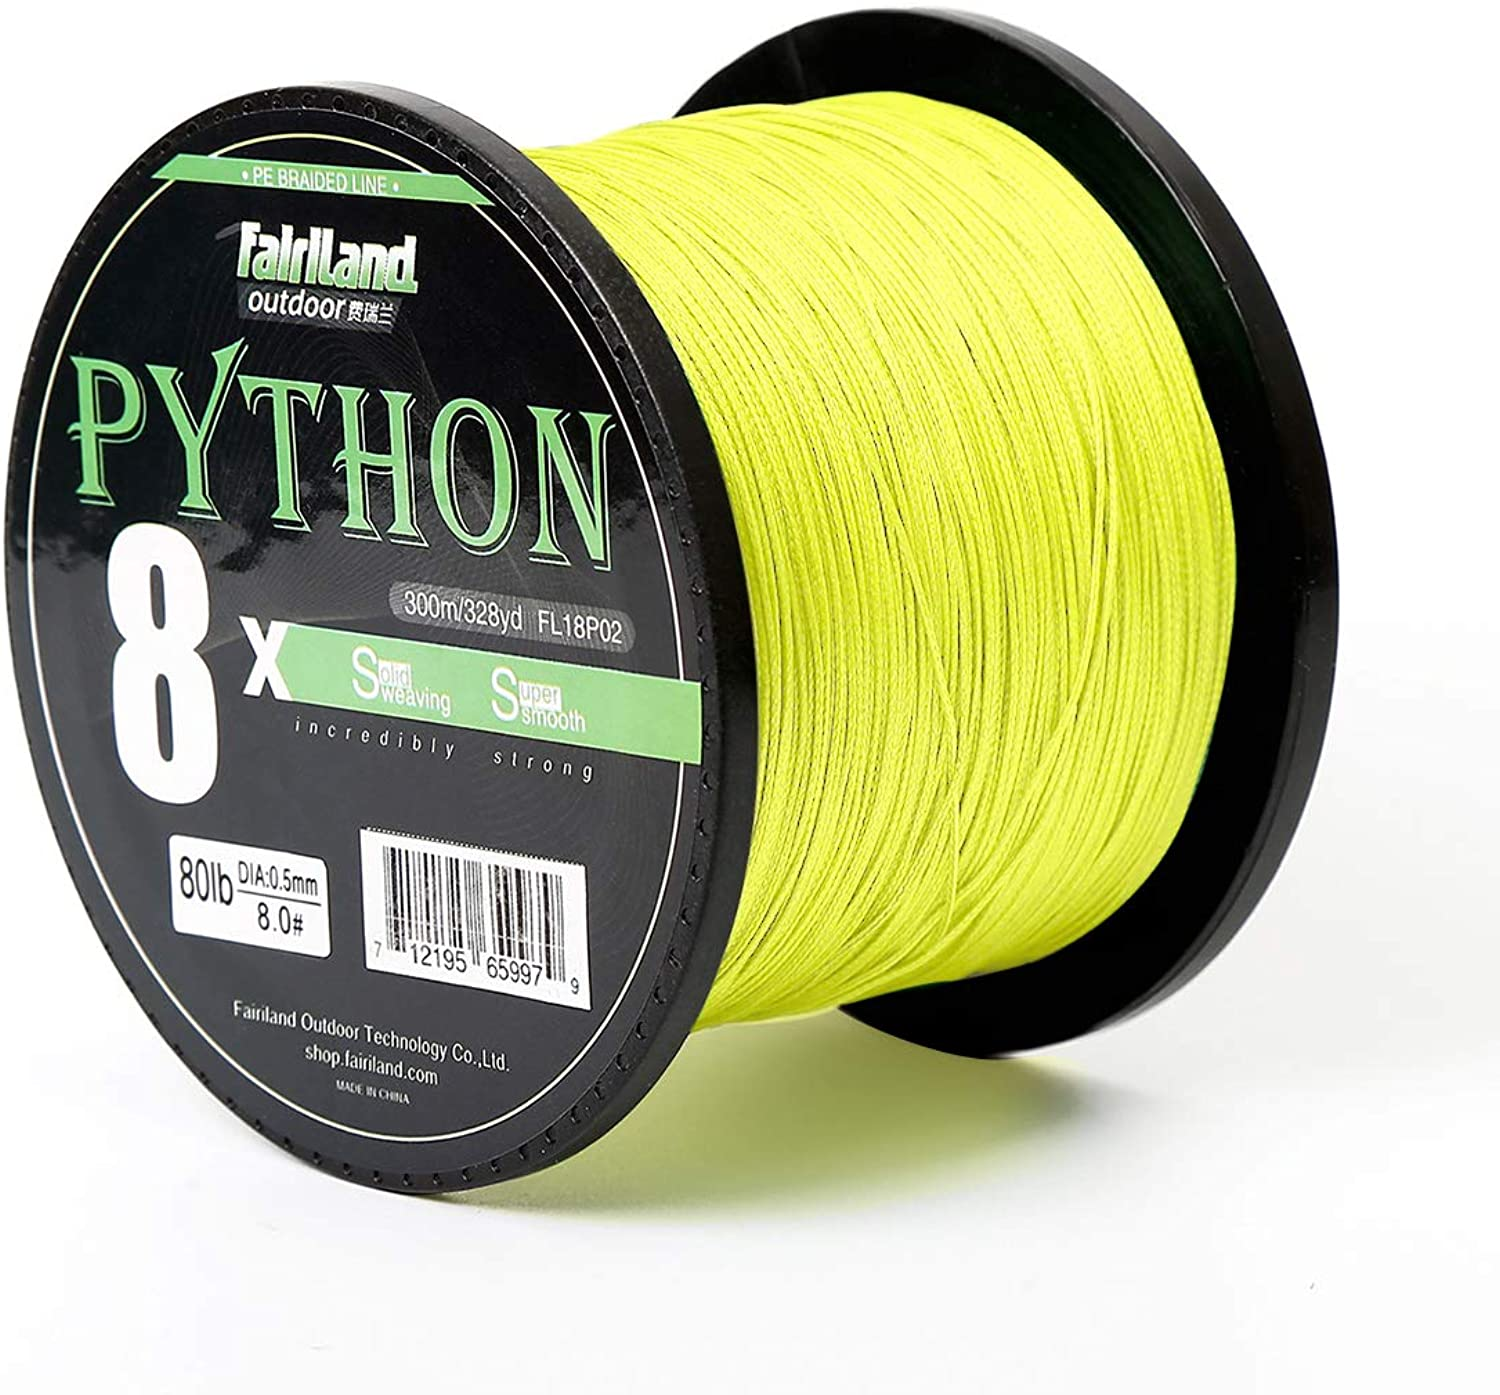 Fairiland Superpower Braided Fishing Line  Abrasion Resistant Braided Lines 8 Strands Multicolor PE Line Wire 150m 300m 500m 0.8 8.0  2180Lb Super Strong High Performance PE Fishing Lines